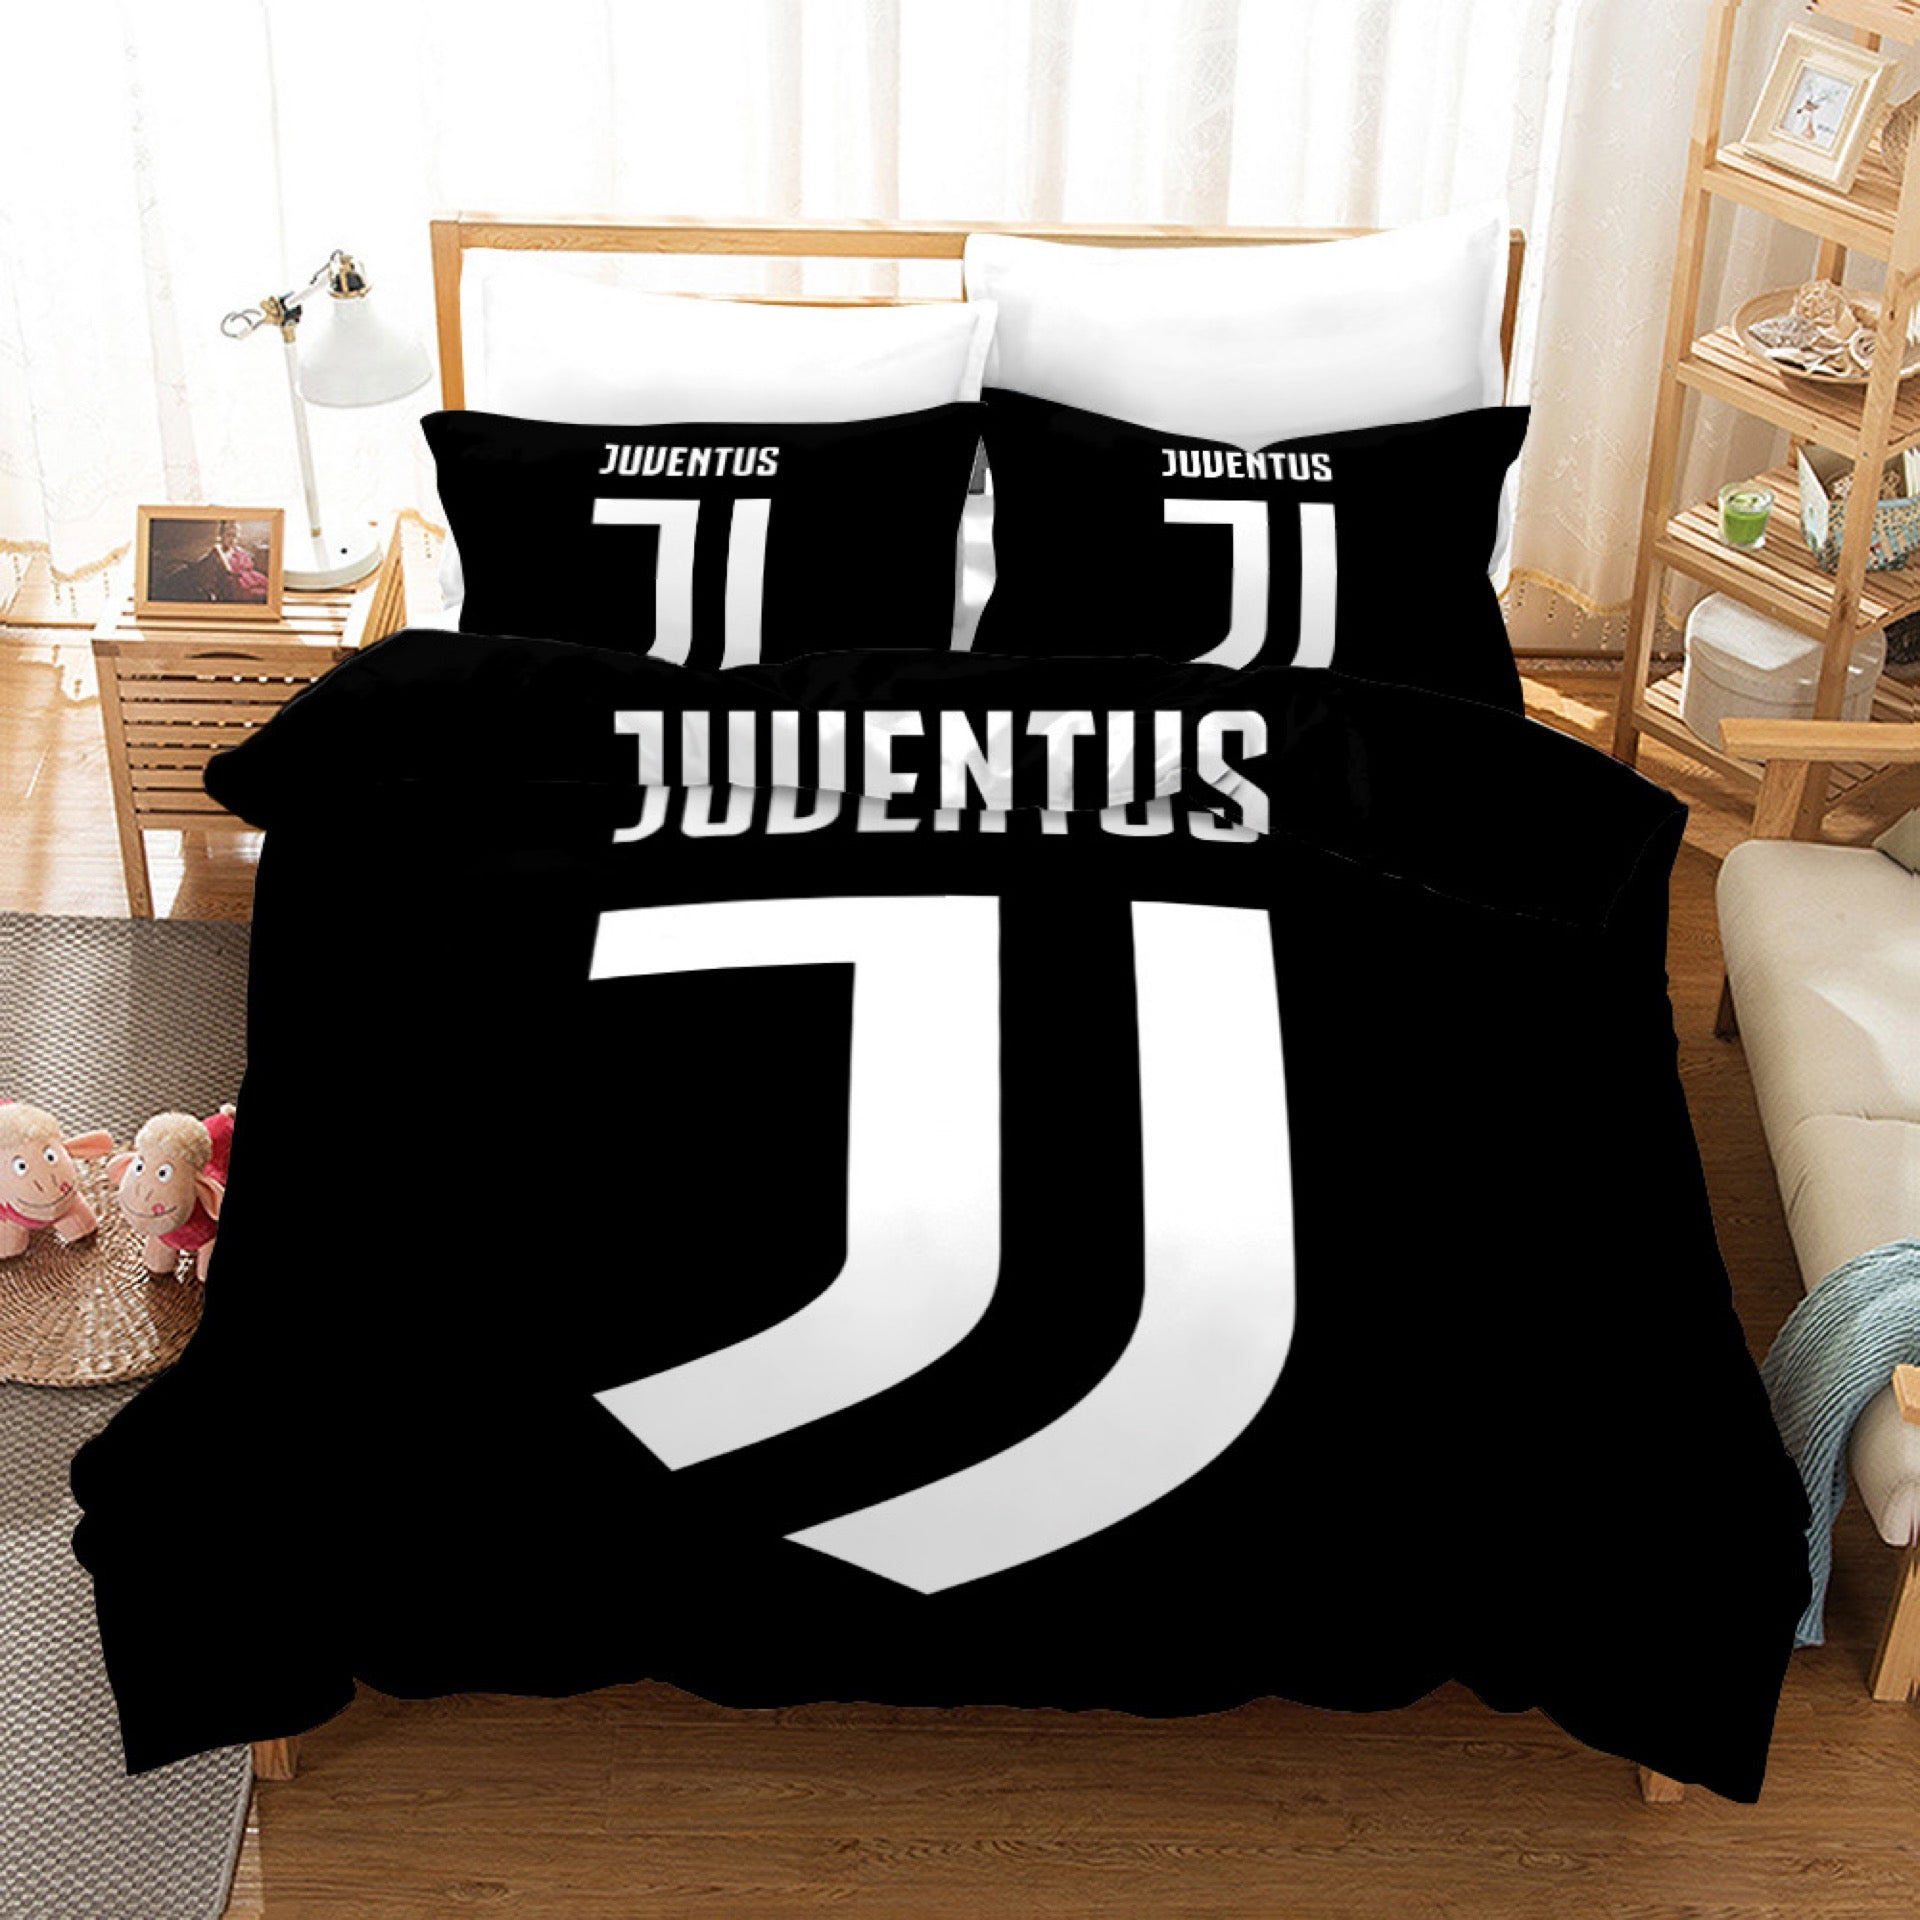 Juventus Cristiano Ronaldo Football Club 12 Duvet Cover Quilt Cover P Bedding Picky